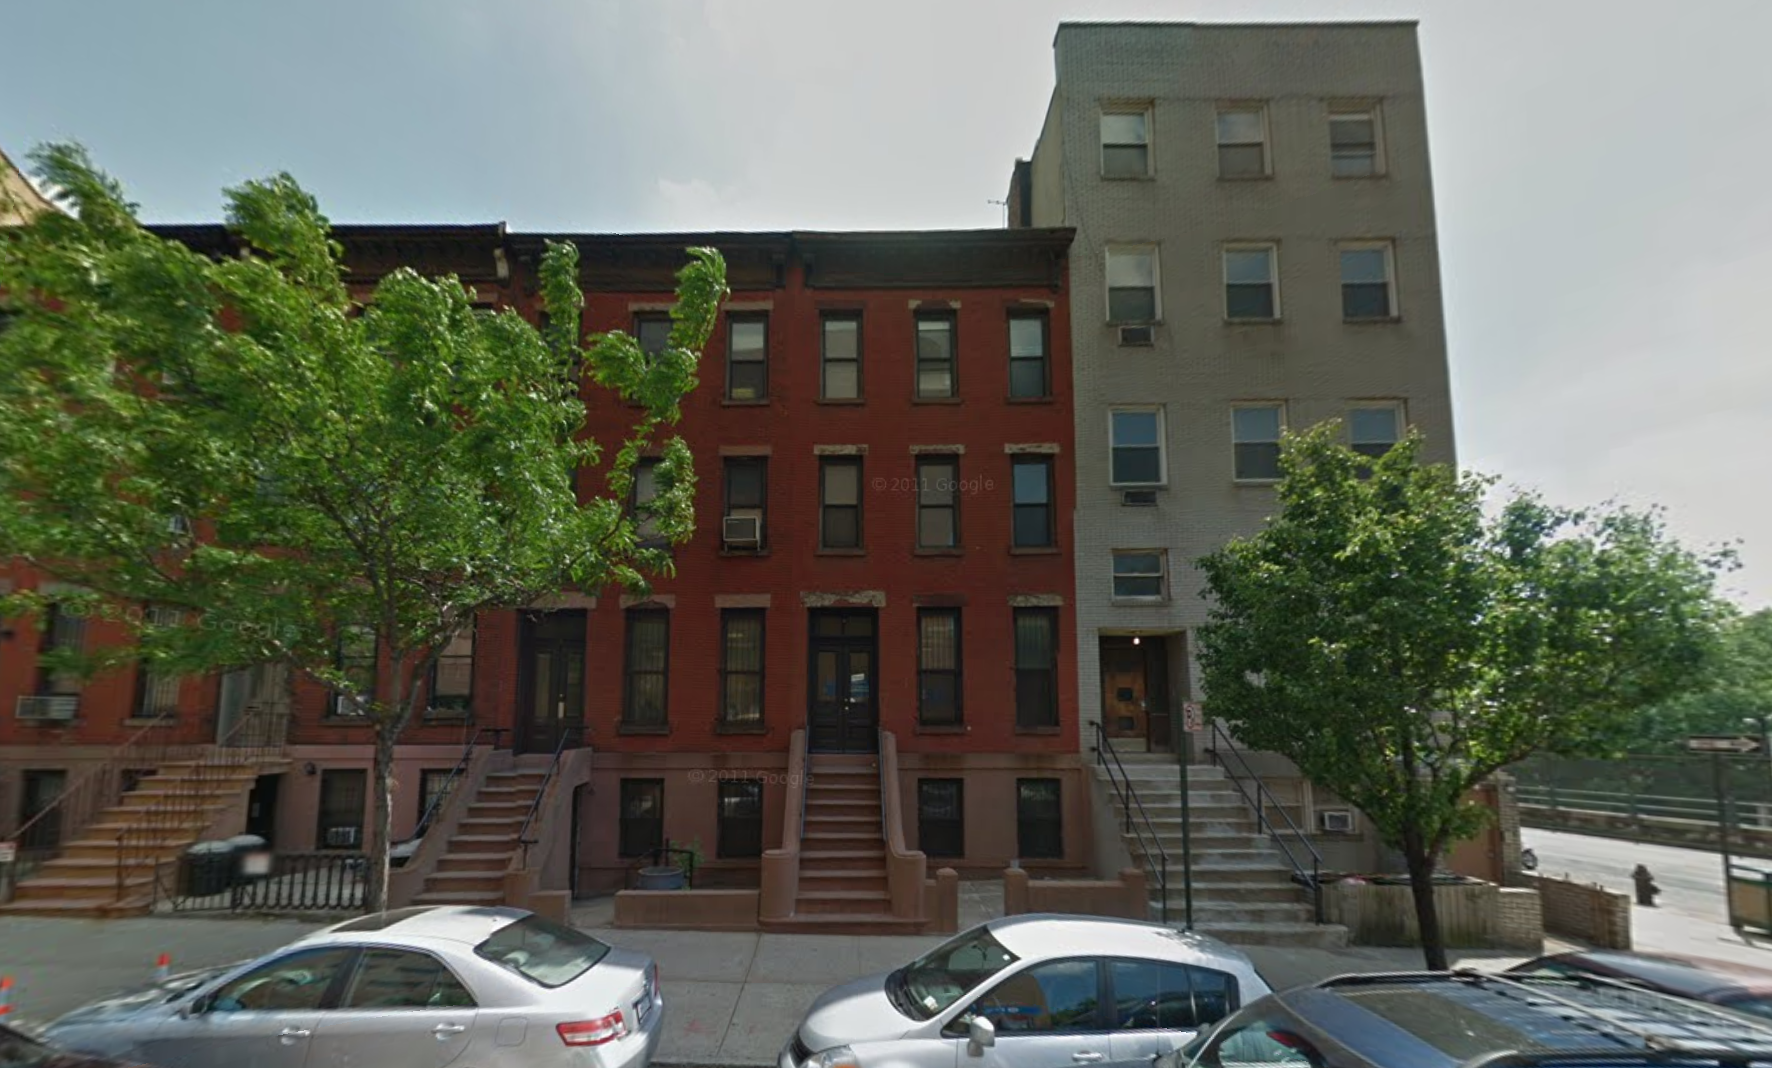 78 Hicks Street, image via Google Maps